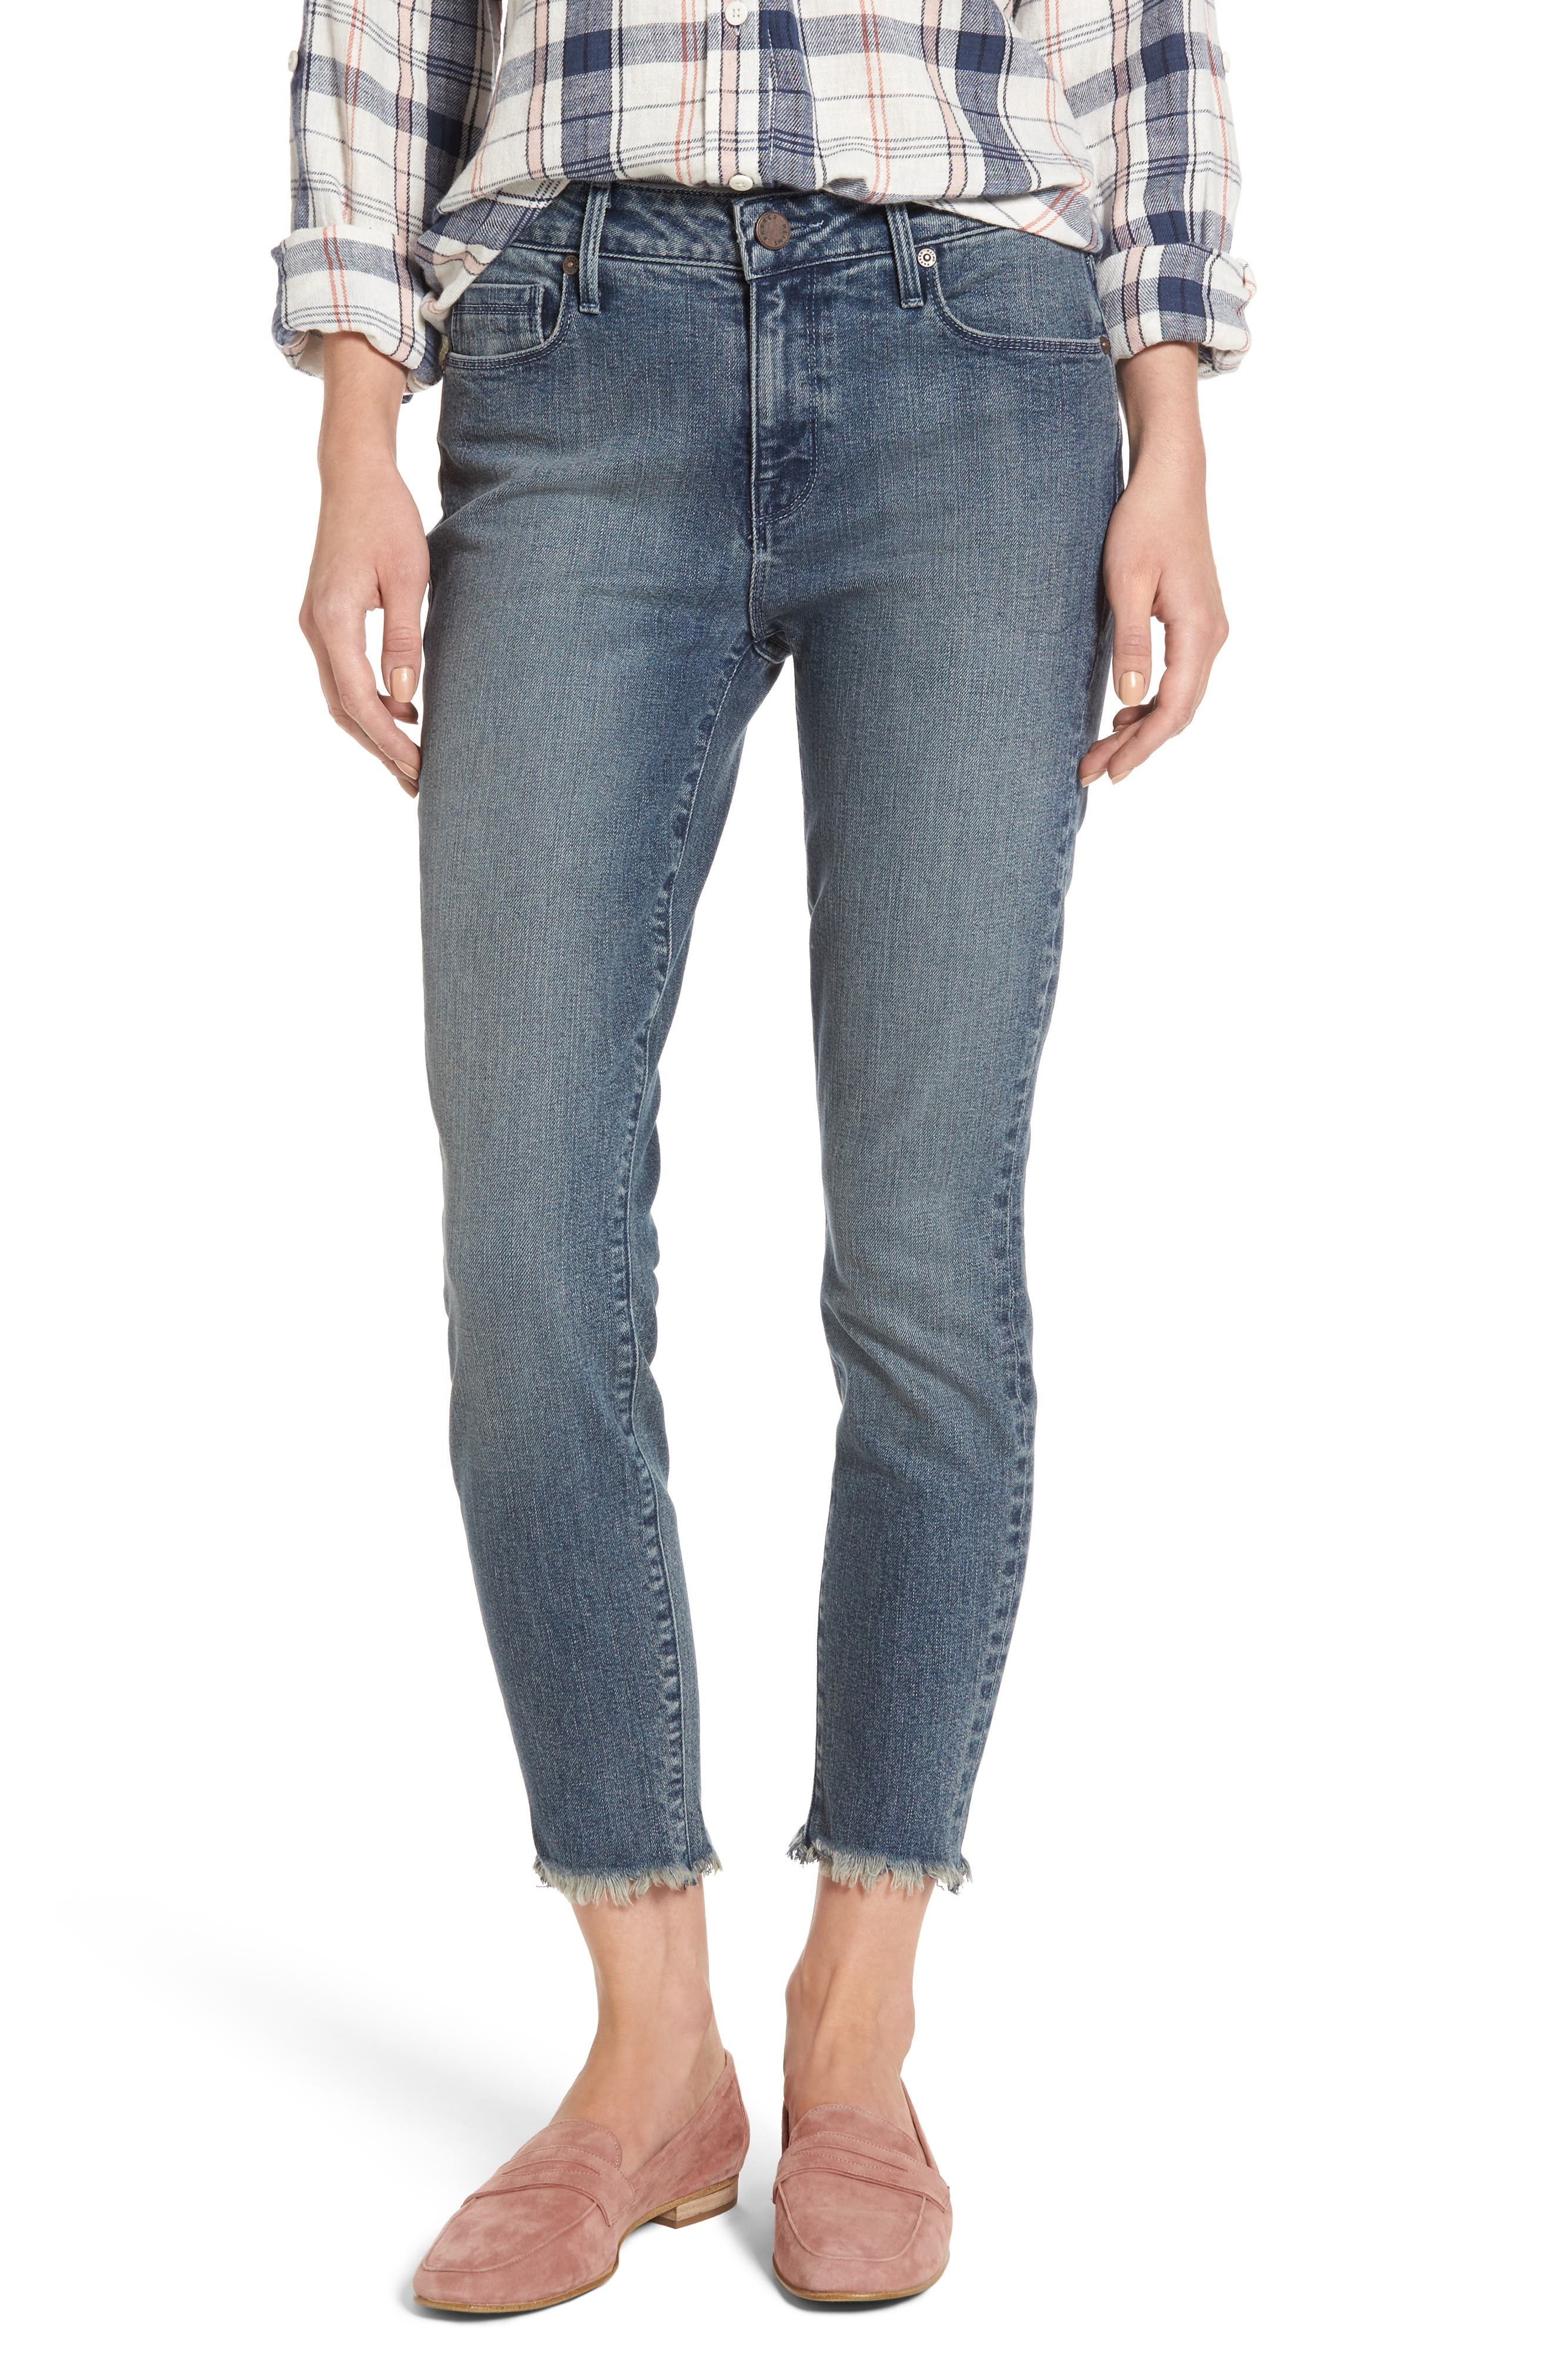 PARKER SMITH Ava Crop Skinny Jeans